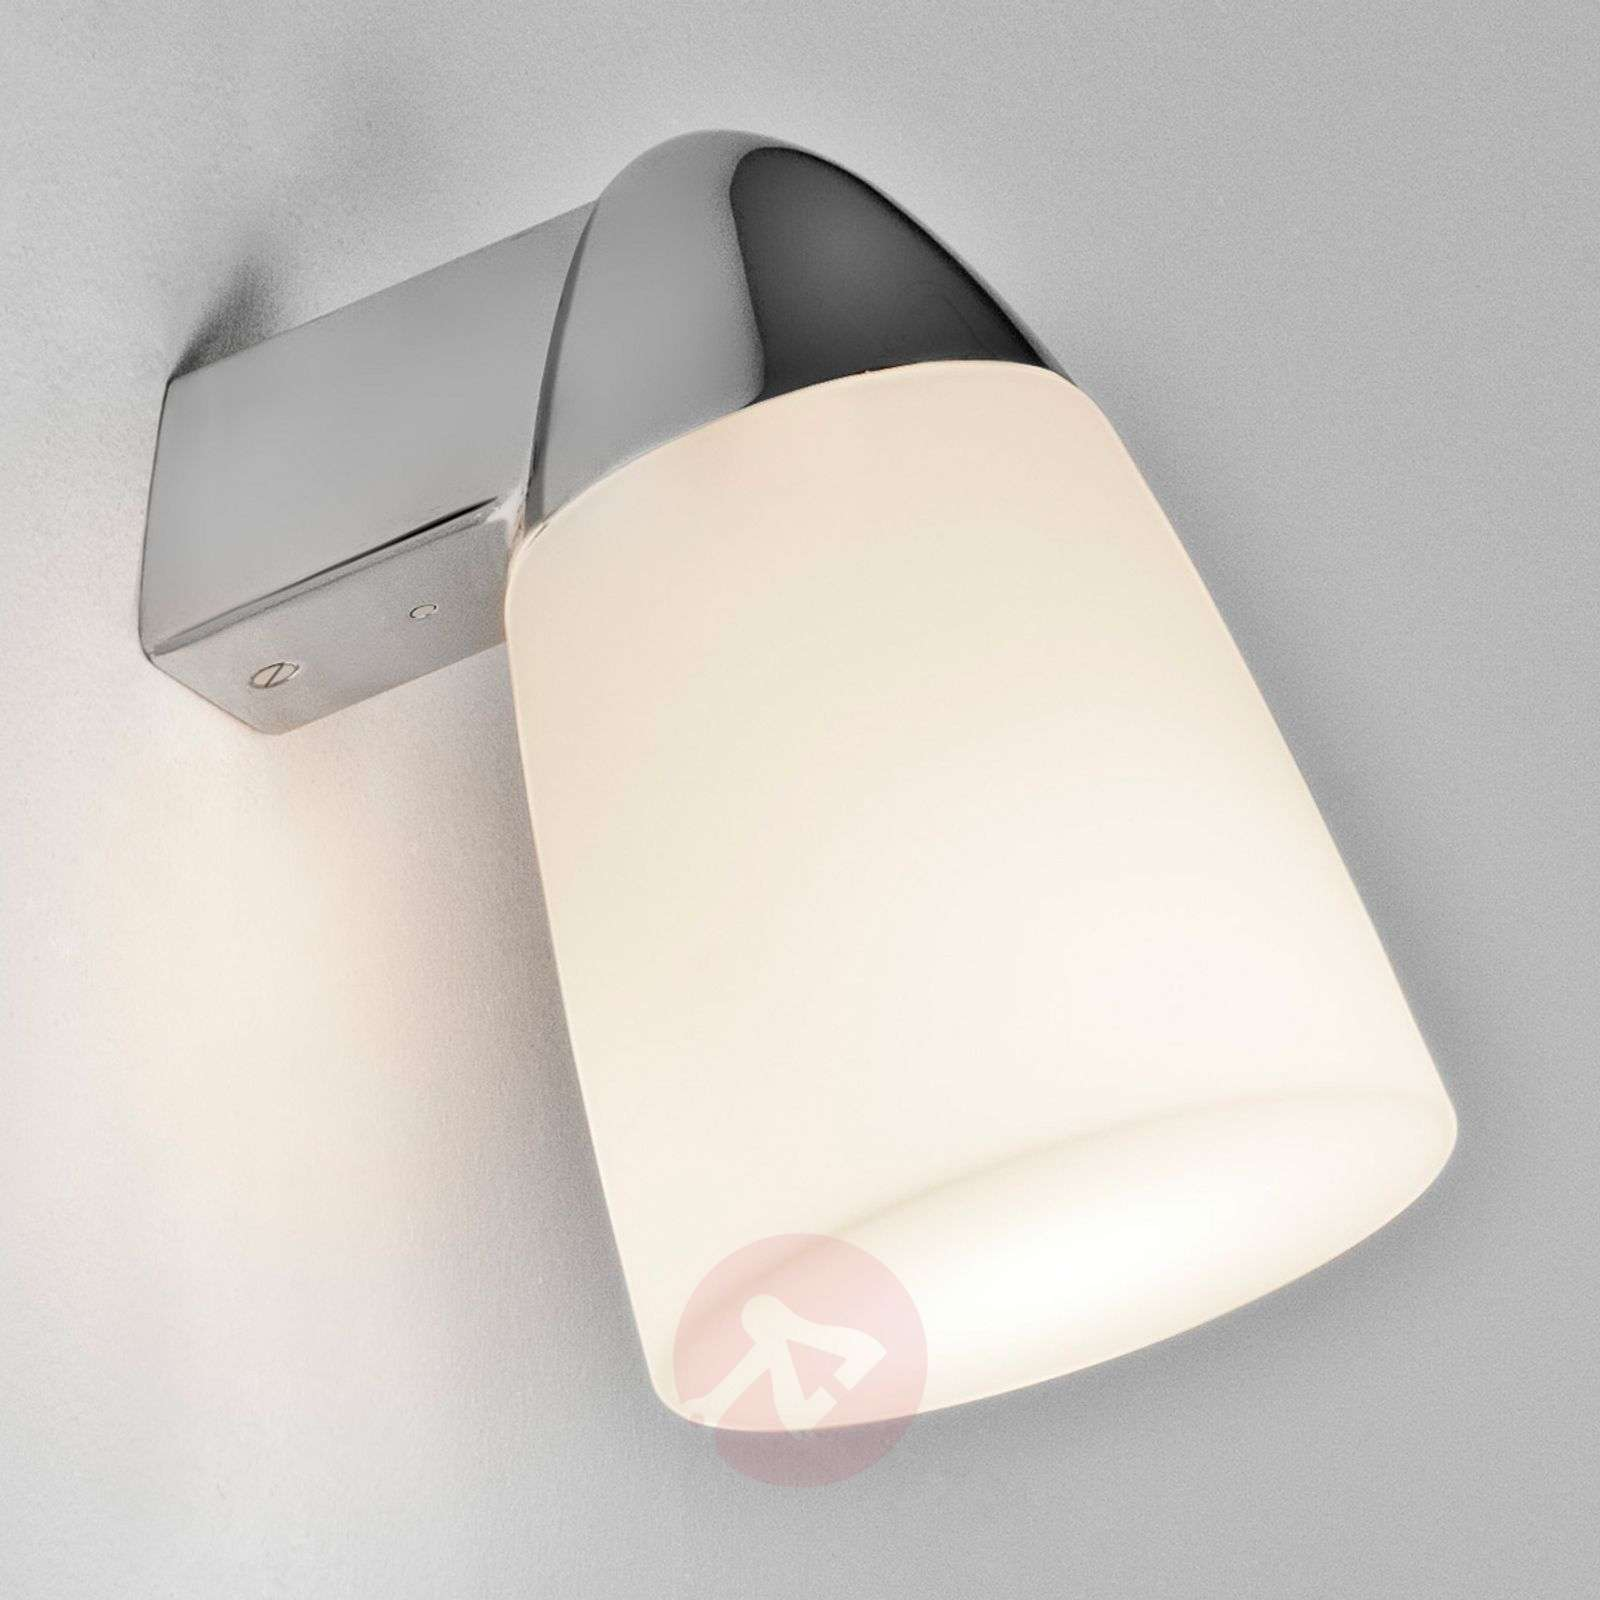 Lincoln Wall Light Classic-1020011-02